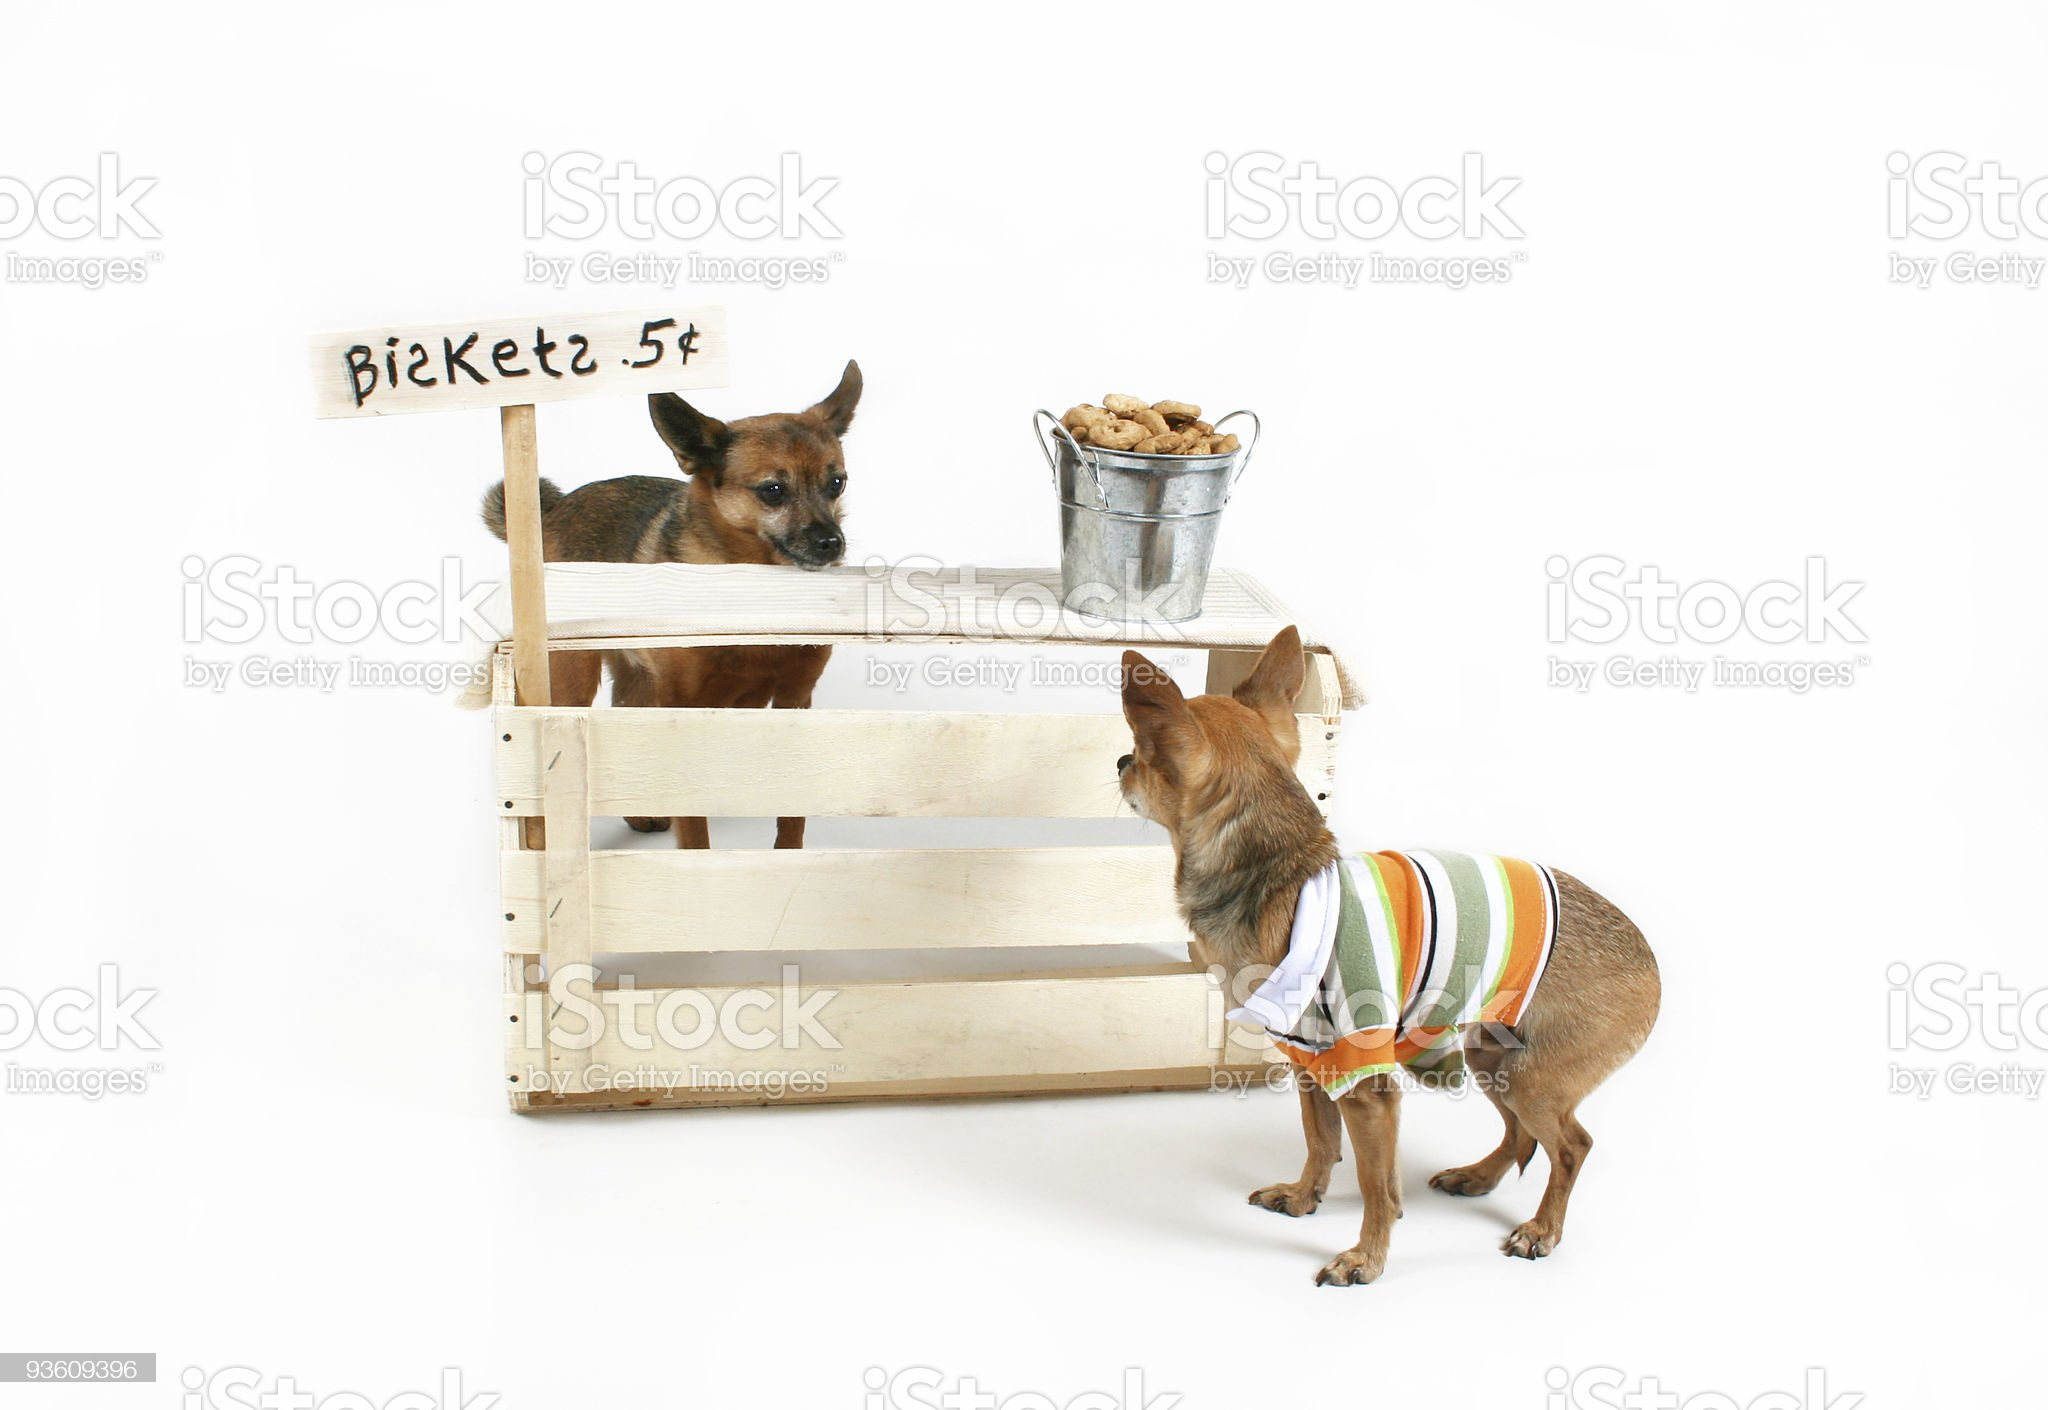 biscuit stand royalty-free stock photo